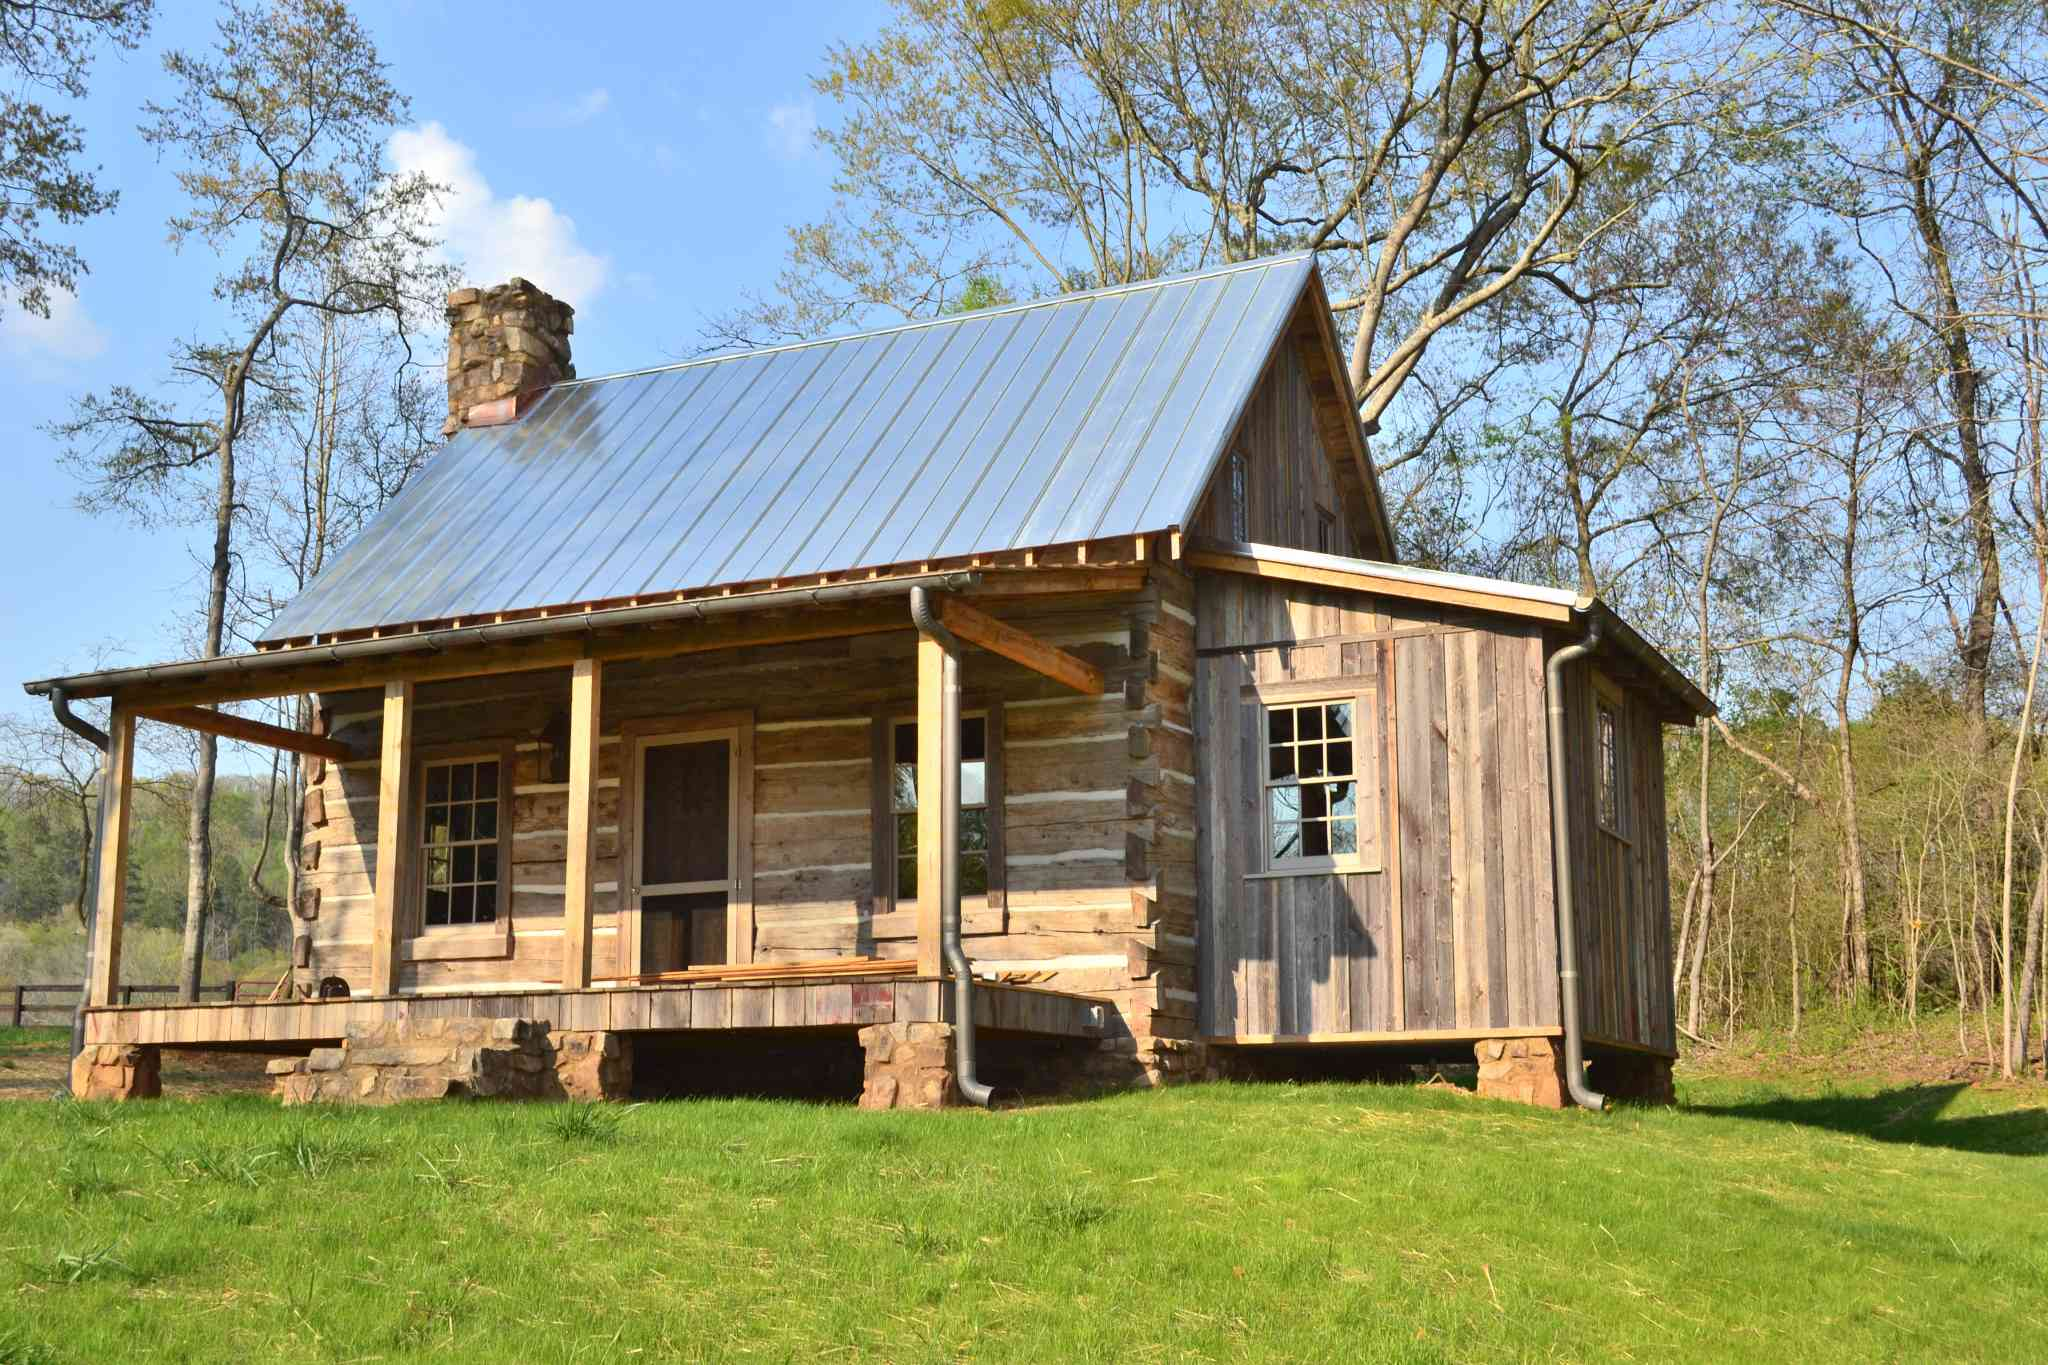 Kingston Ga Cabin Air Conditioning Amp Geothermal System